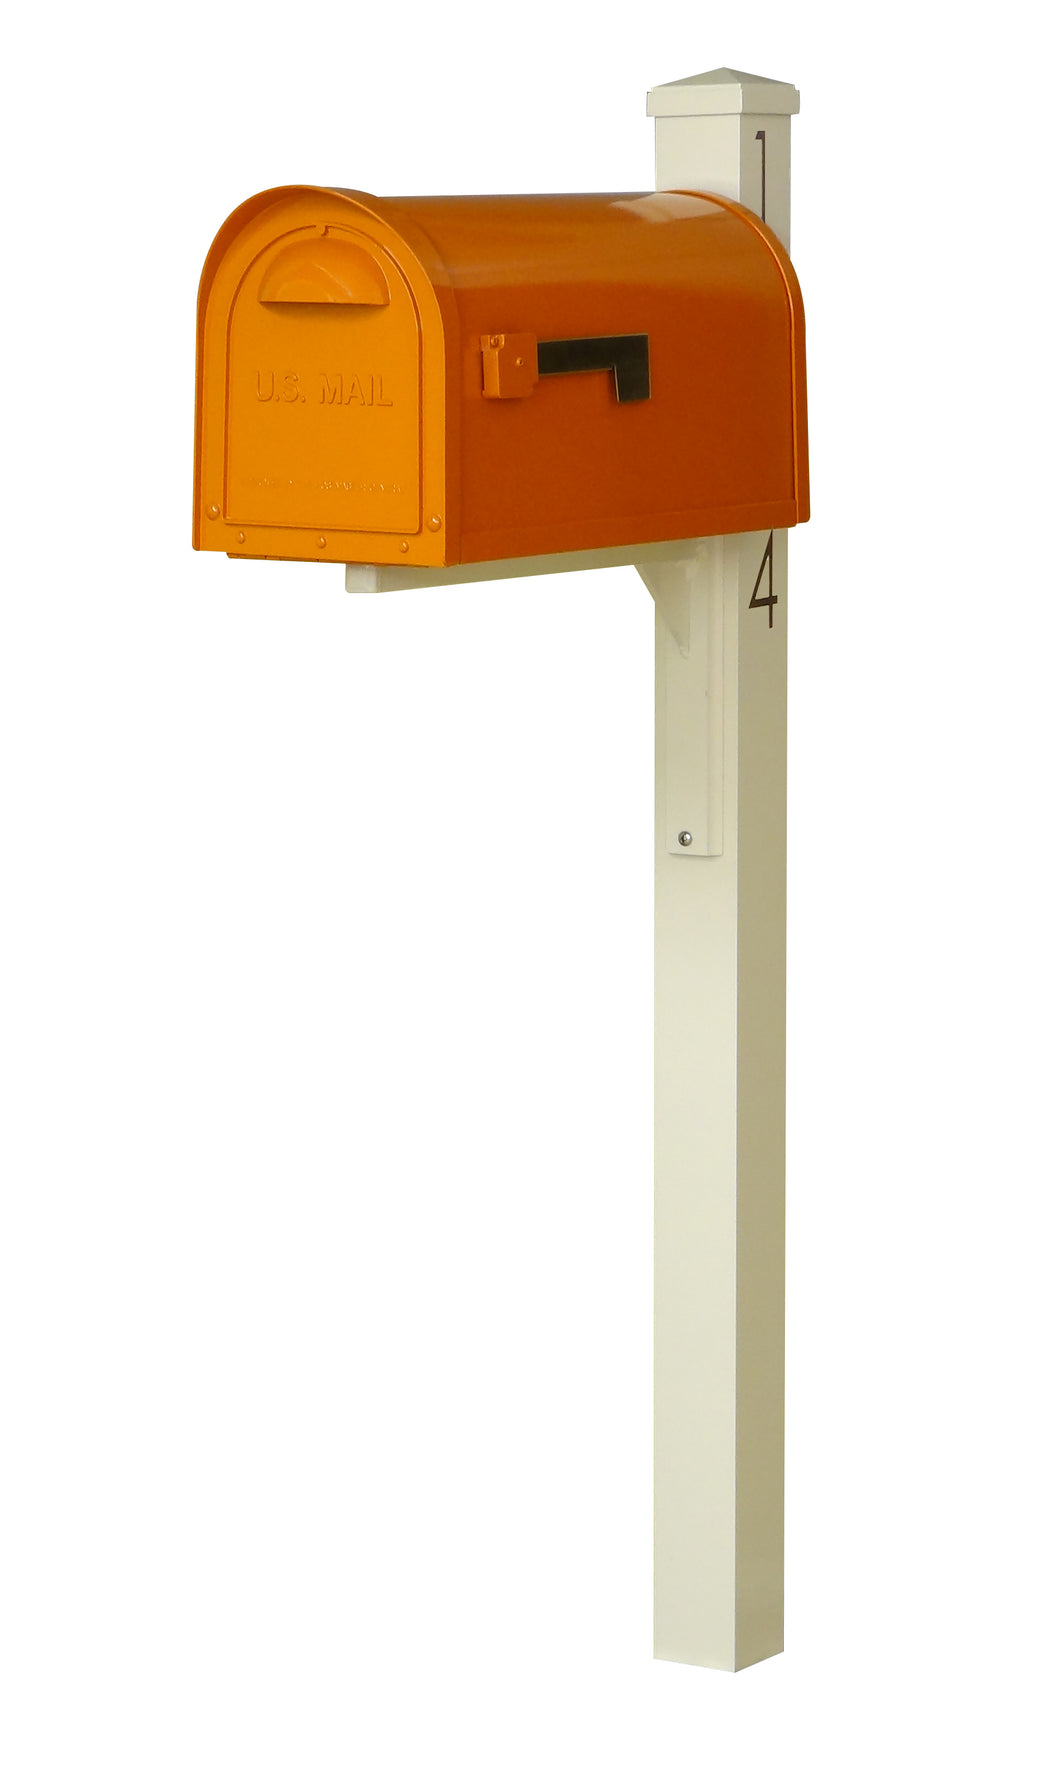 Special lite mid-century modern mailbox and post.  An Orange powdered coated mailbox  with side flag. A square ivory post with pyramind finial and black vinyl address numbers on the side